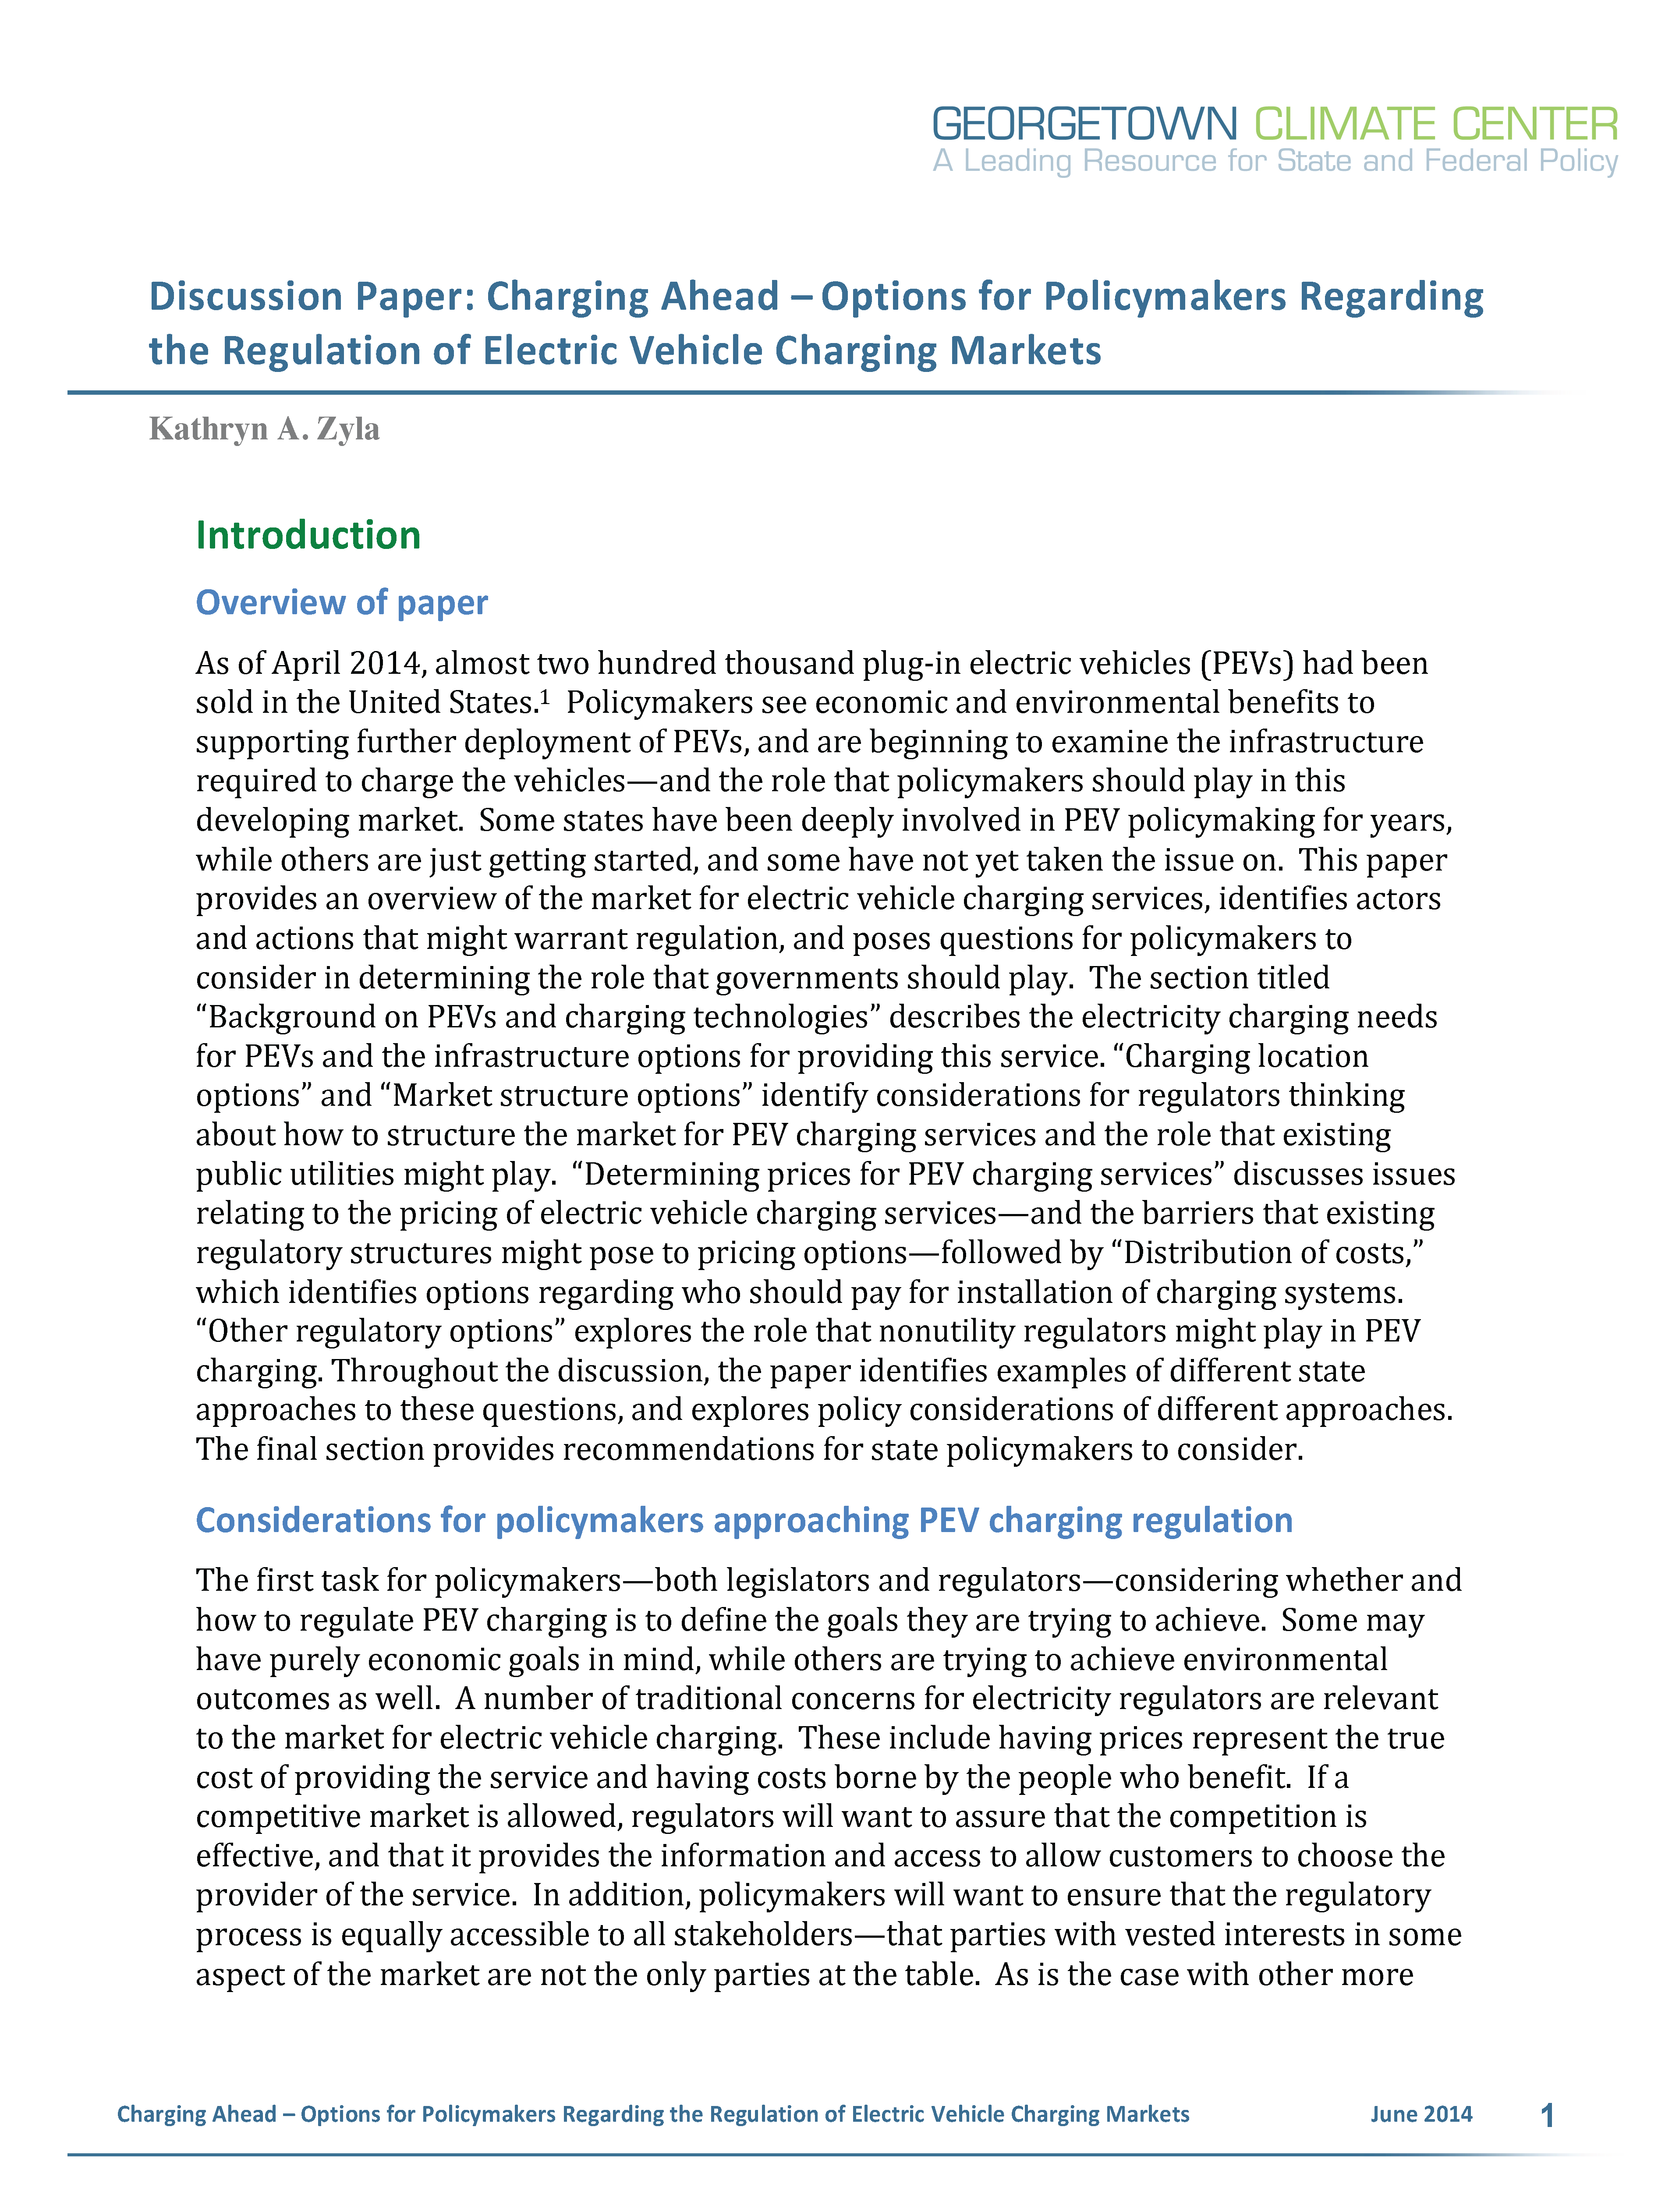 Charging Ahead – Options for Policymakers Regarding the Regulation of Electric Vehicle Charging Markets